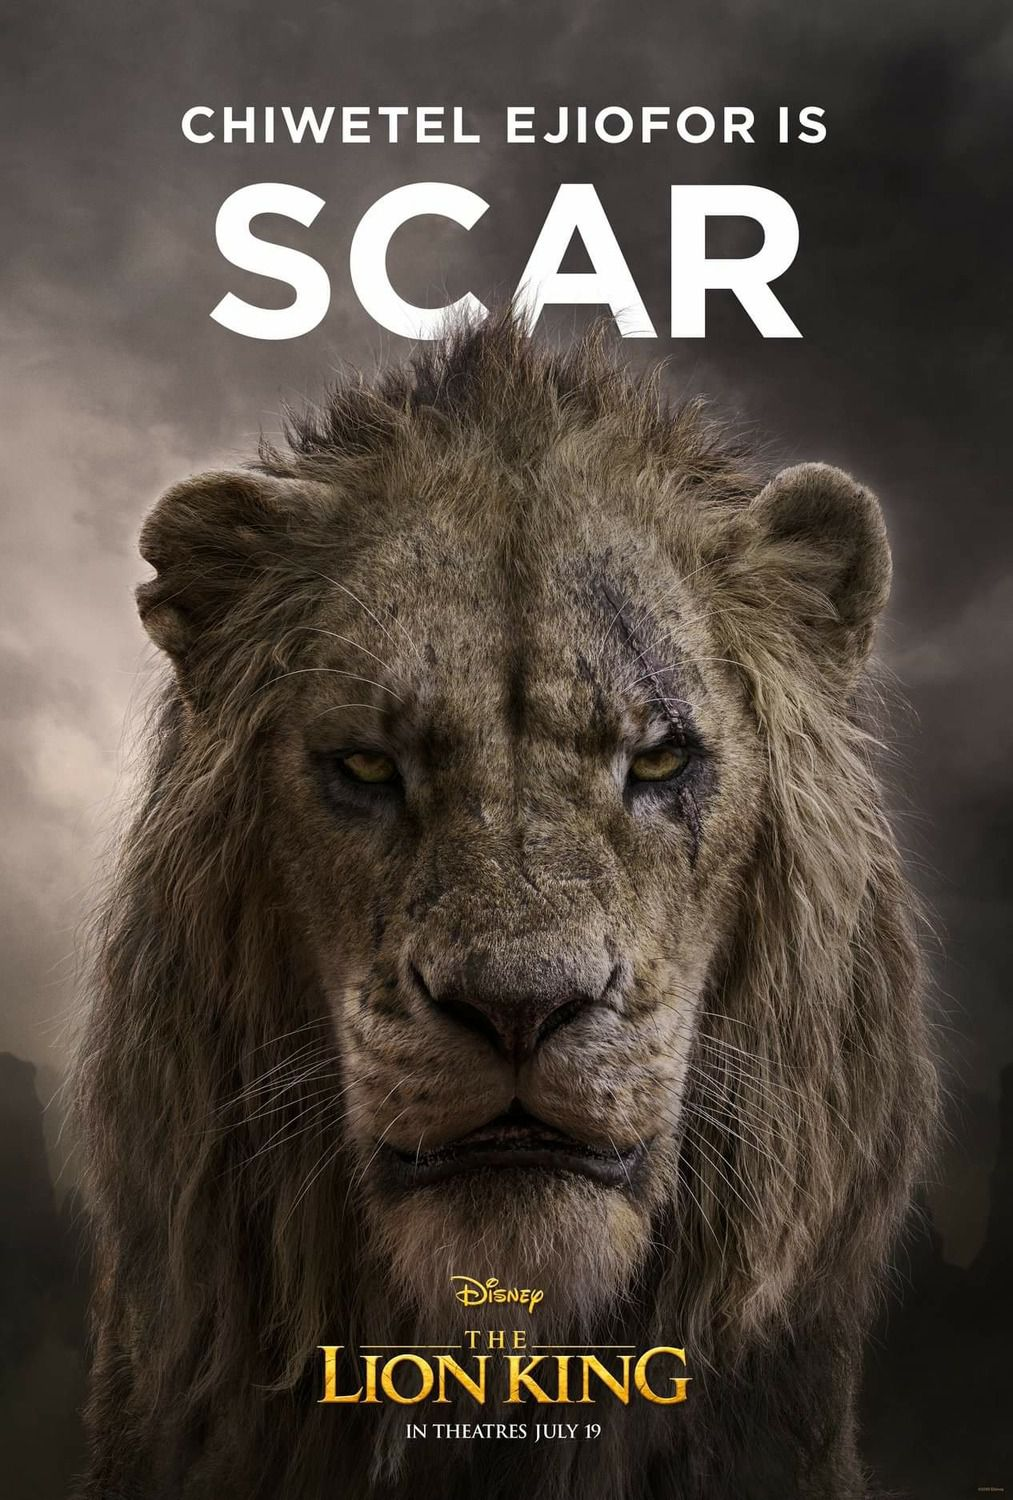 Chiwetel Ejiofor is Scar